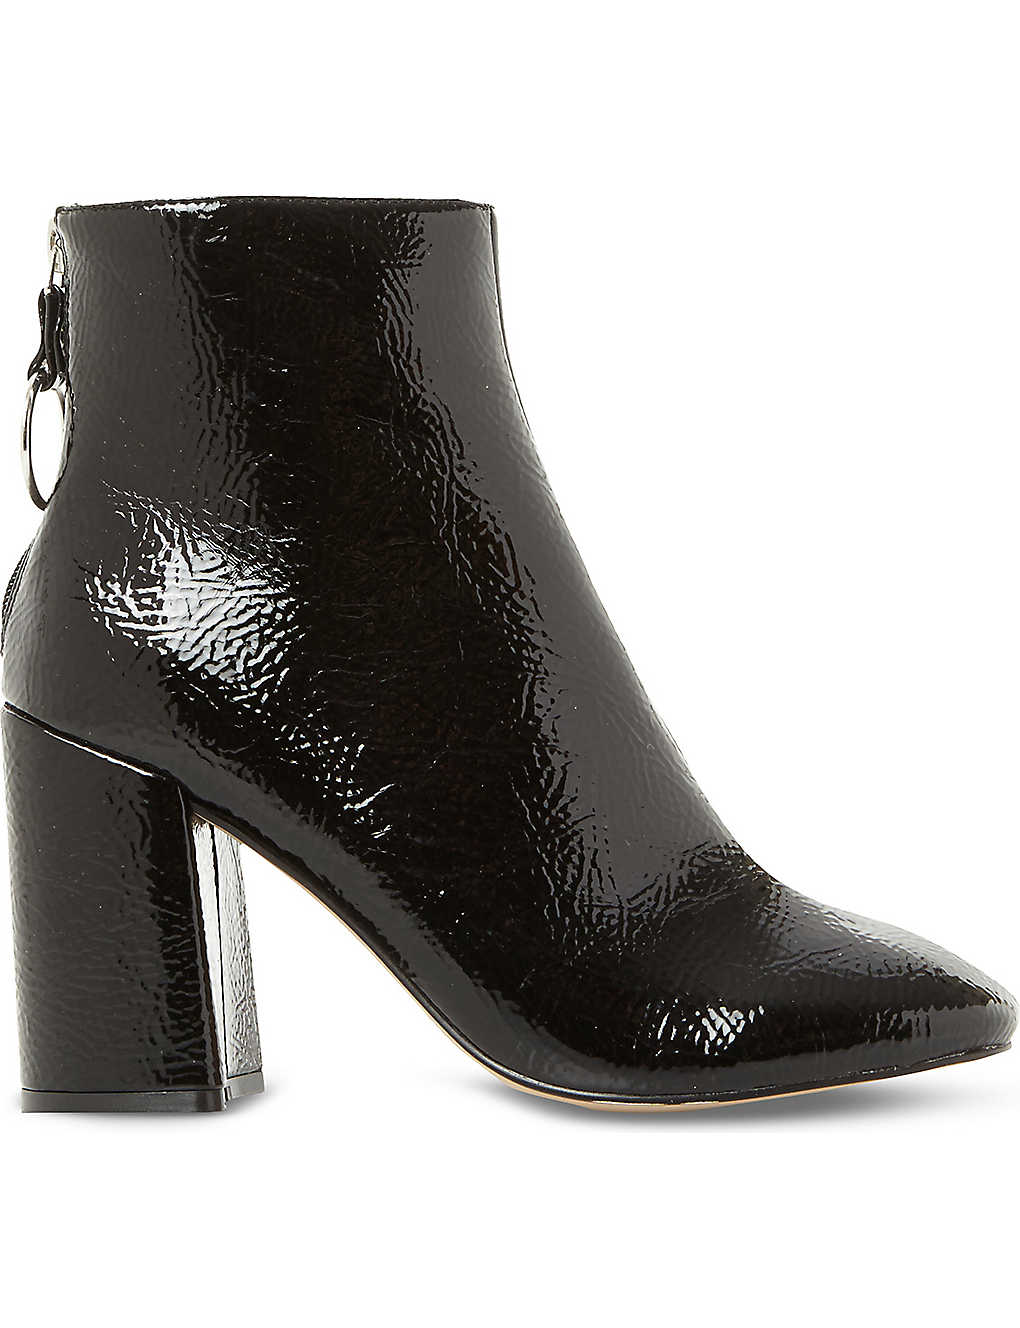 cb37b4d3ab4 STEVE MADDEN - Posed patent-effect heeled ankle boots